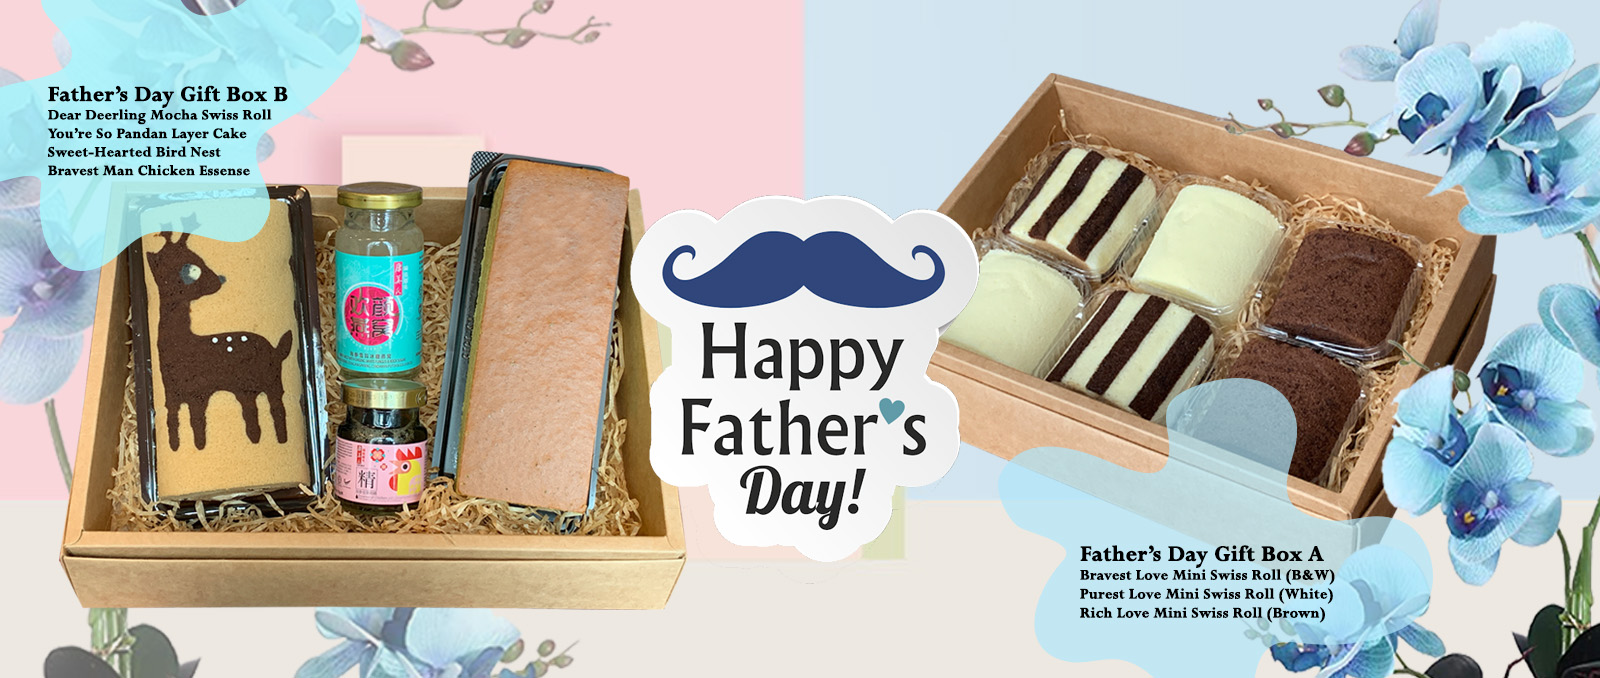 Father Day Website Banner 1600 x 678